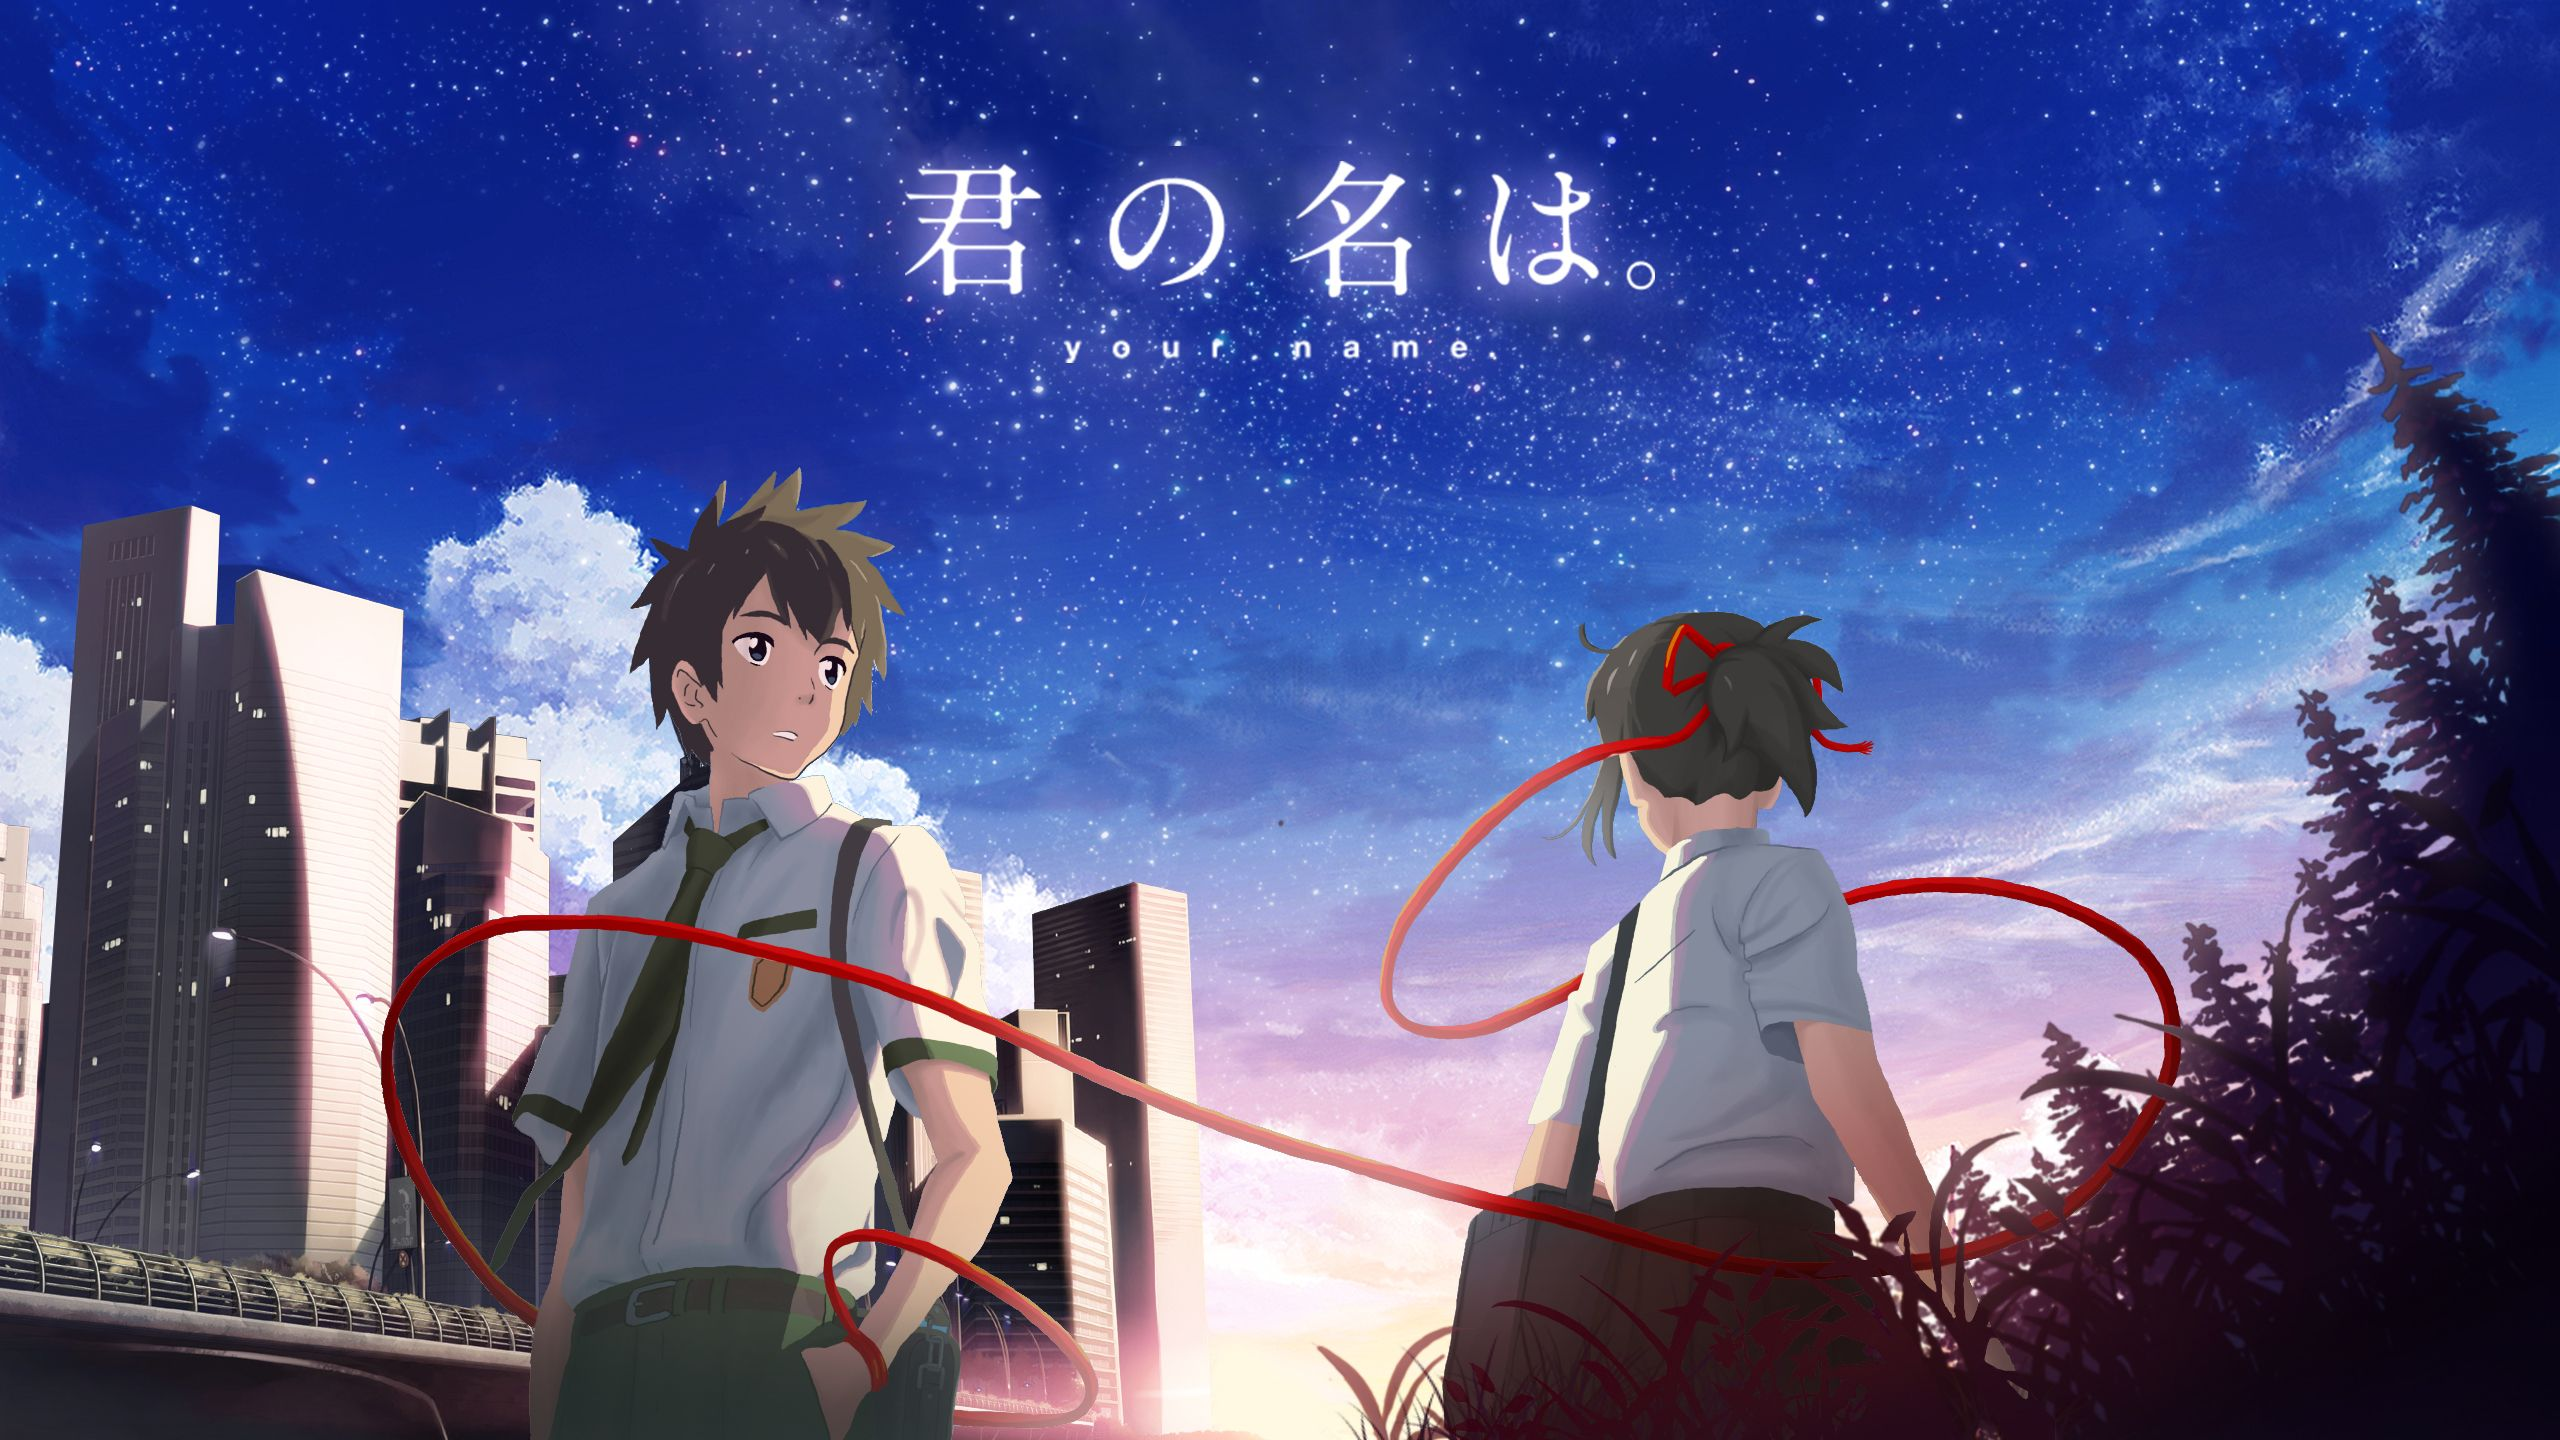 Hd wallpaper name - Anime Your Name Fondo De Pantalla